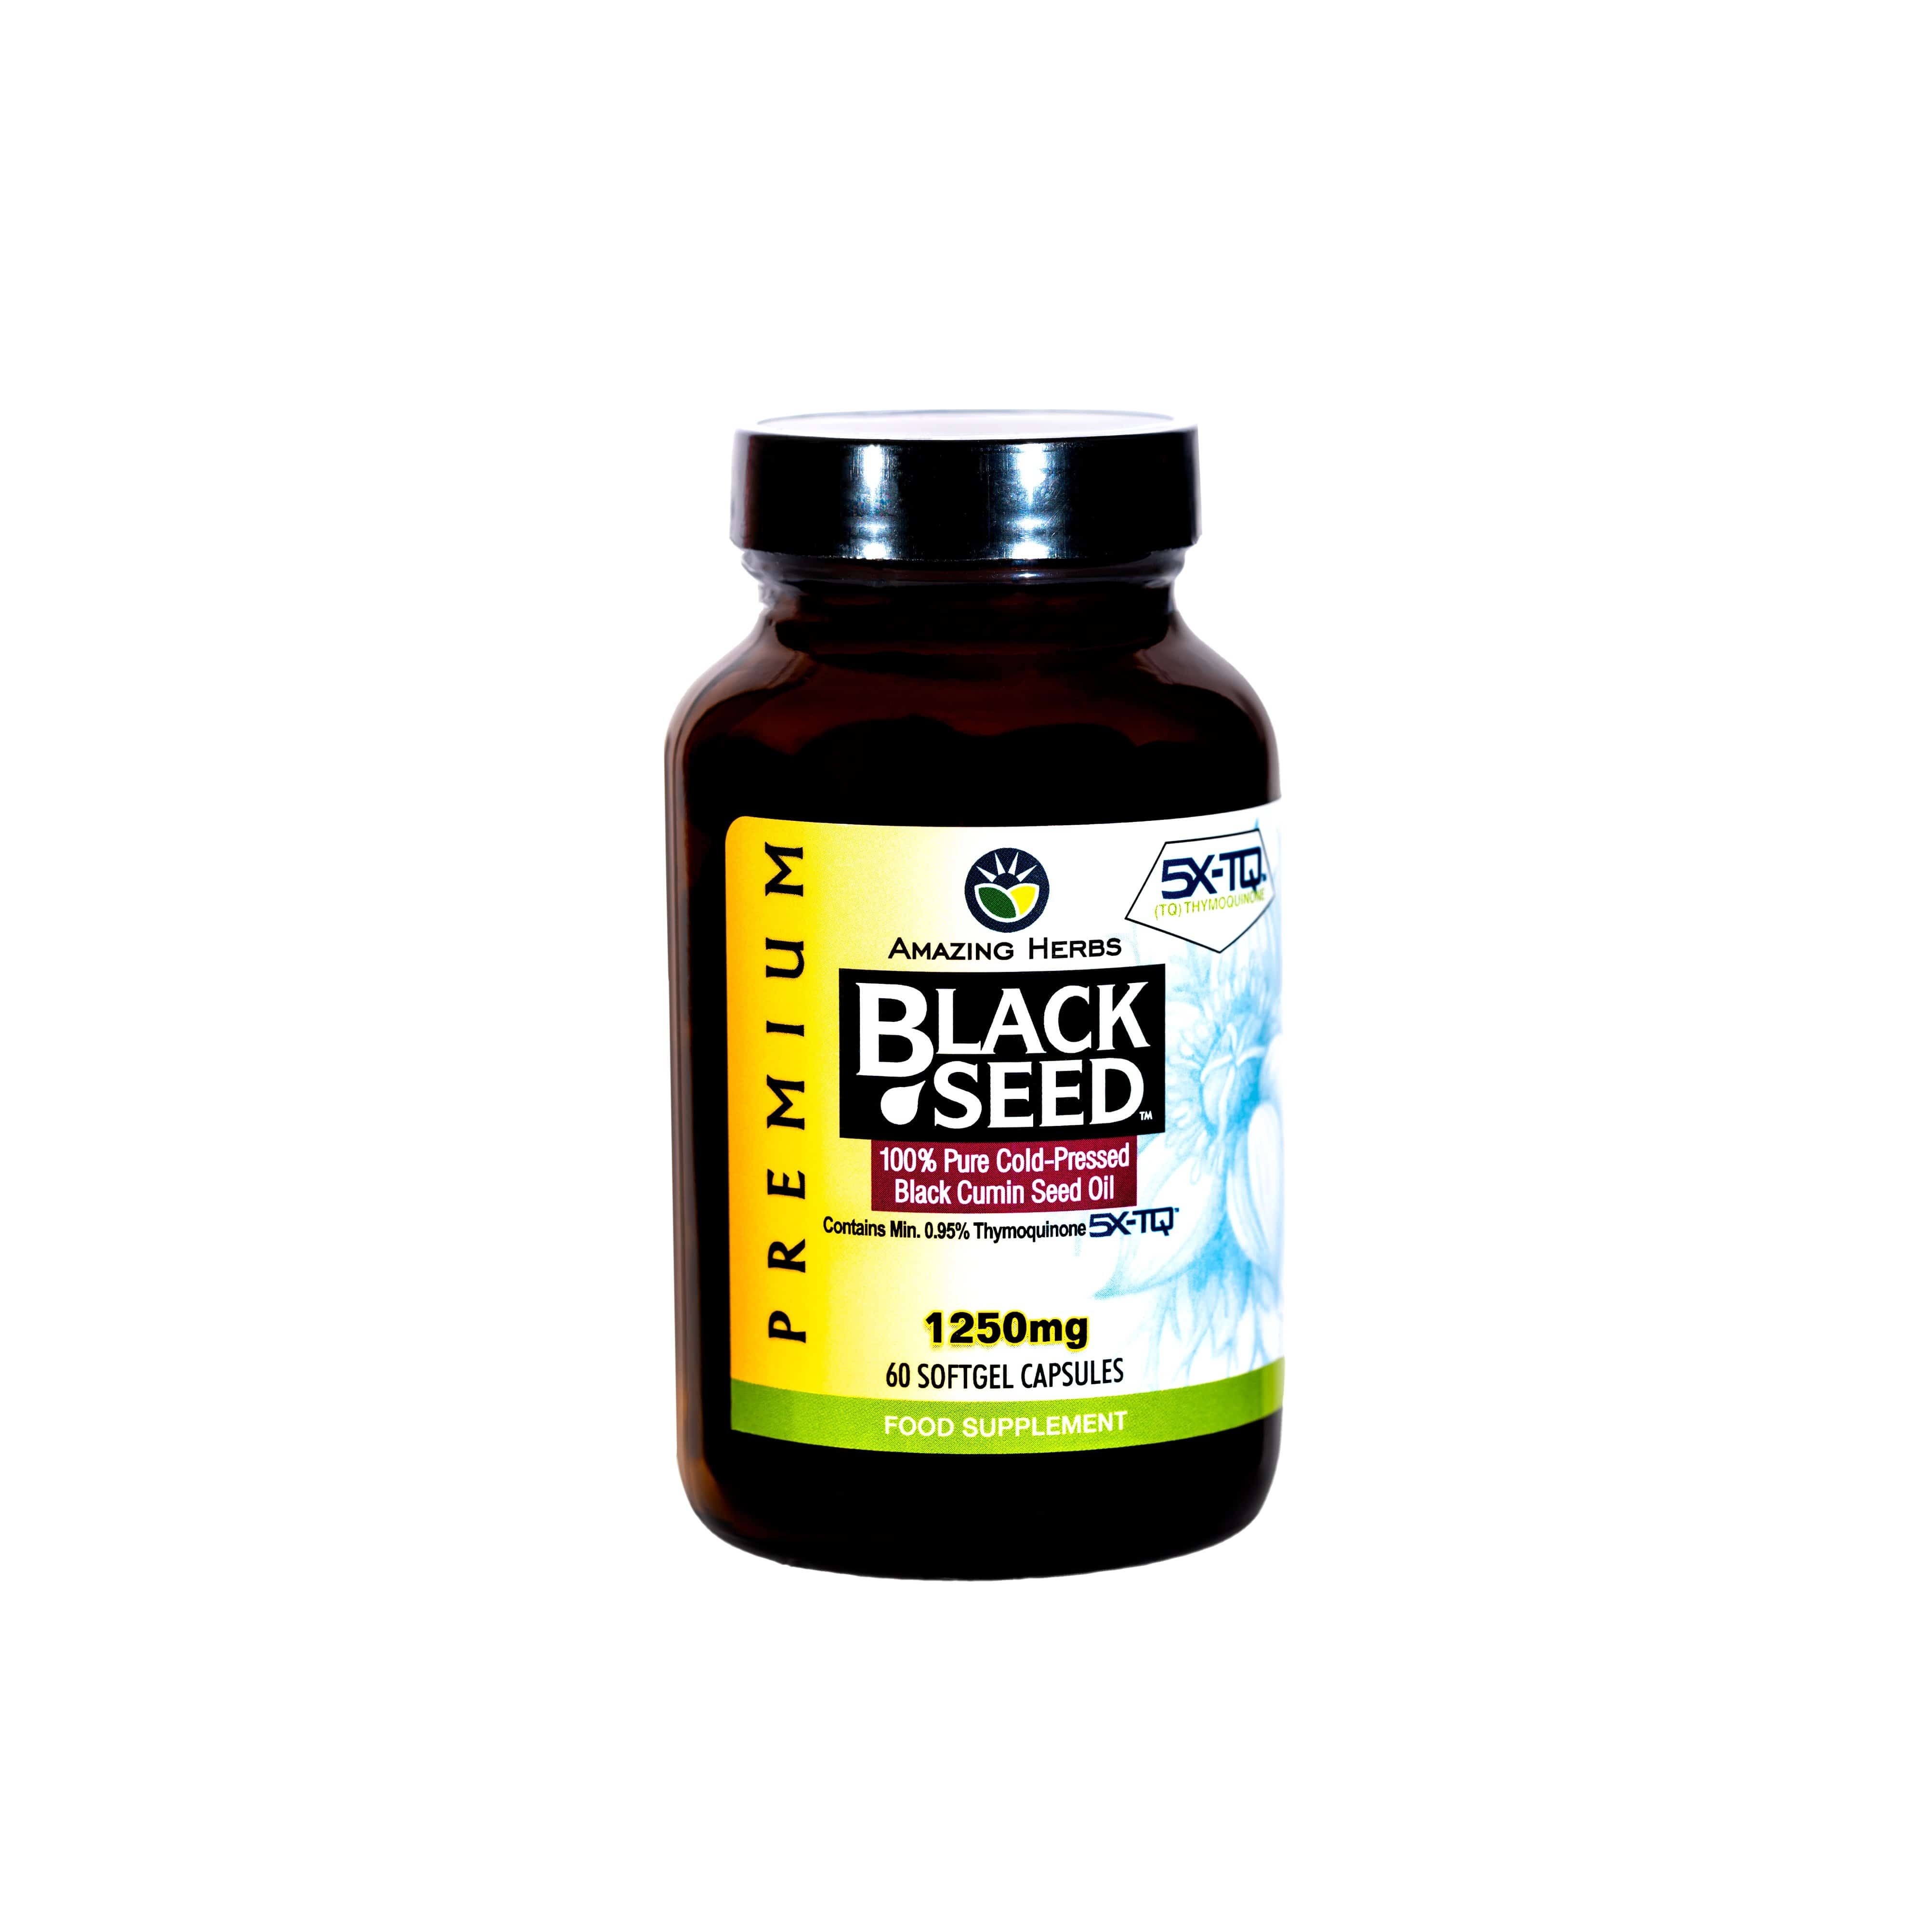 Amazing Herbs UK New Product - Amazing Herbs Premium Black Seed Oil Softgels 1250mg, 60 count